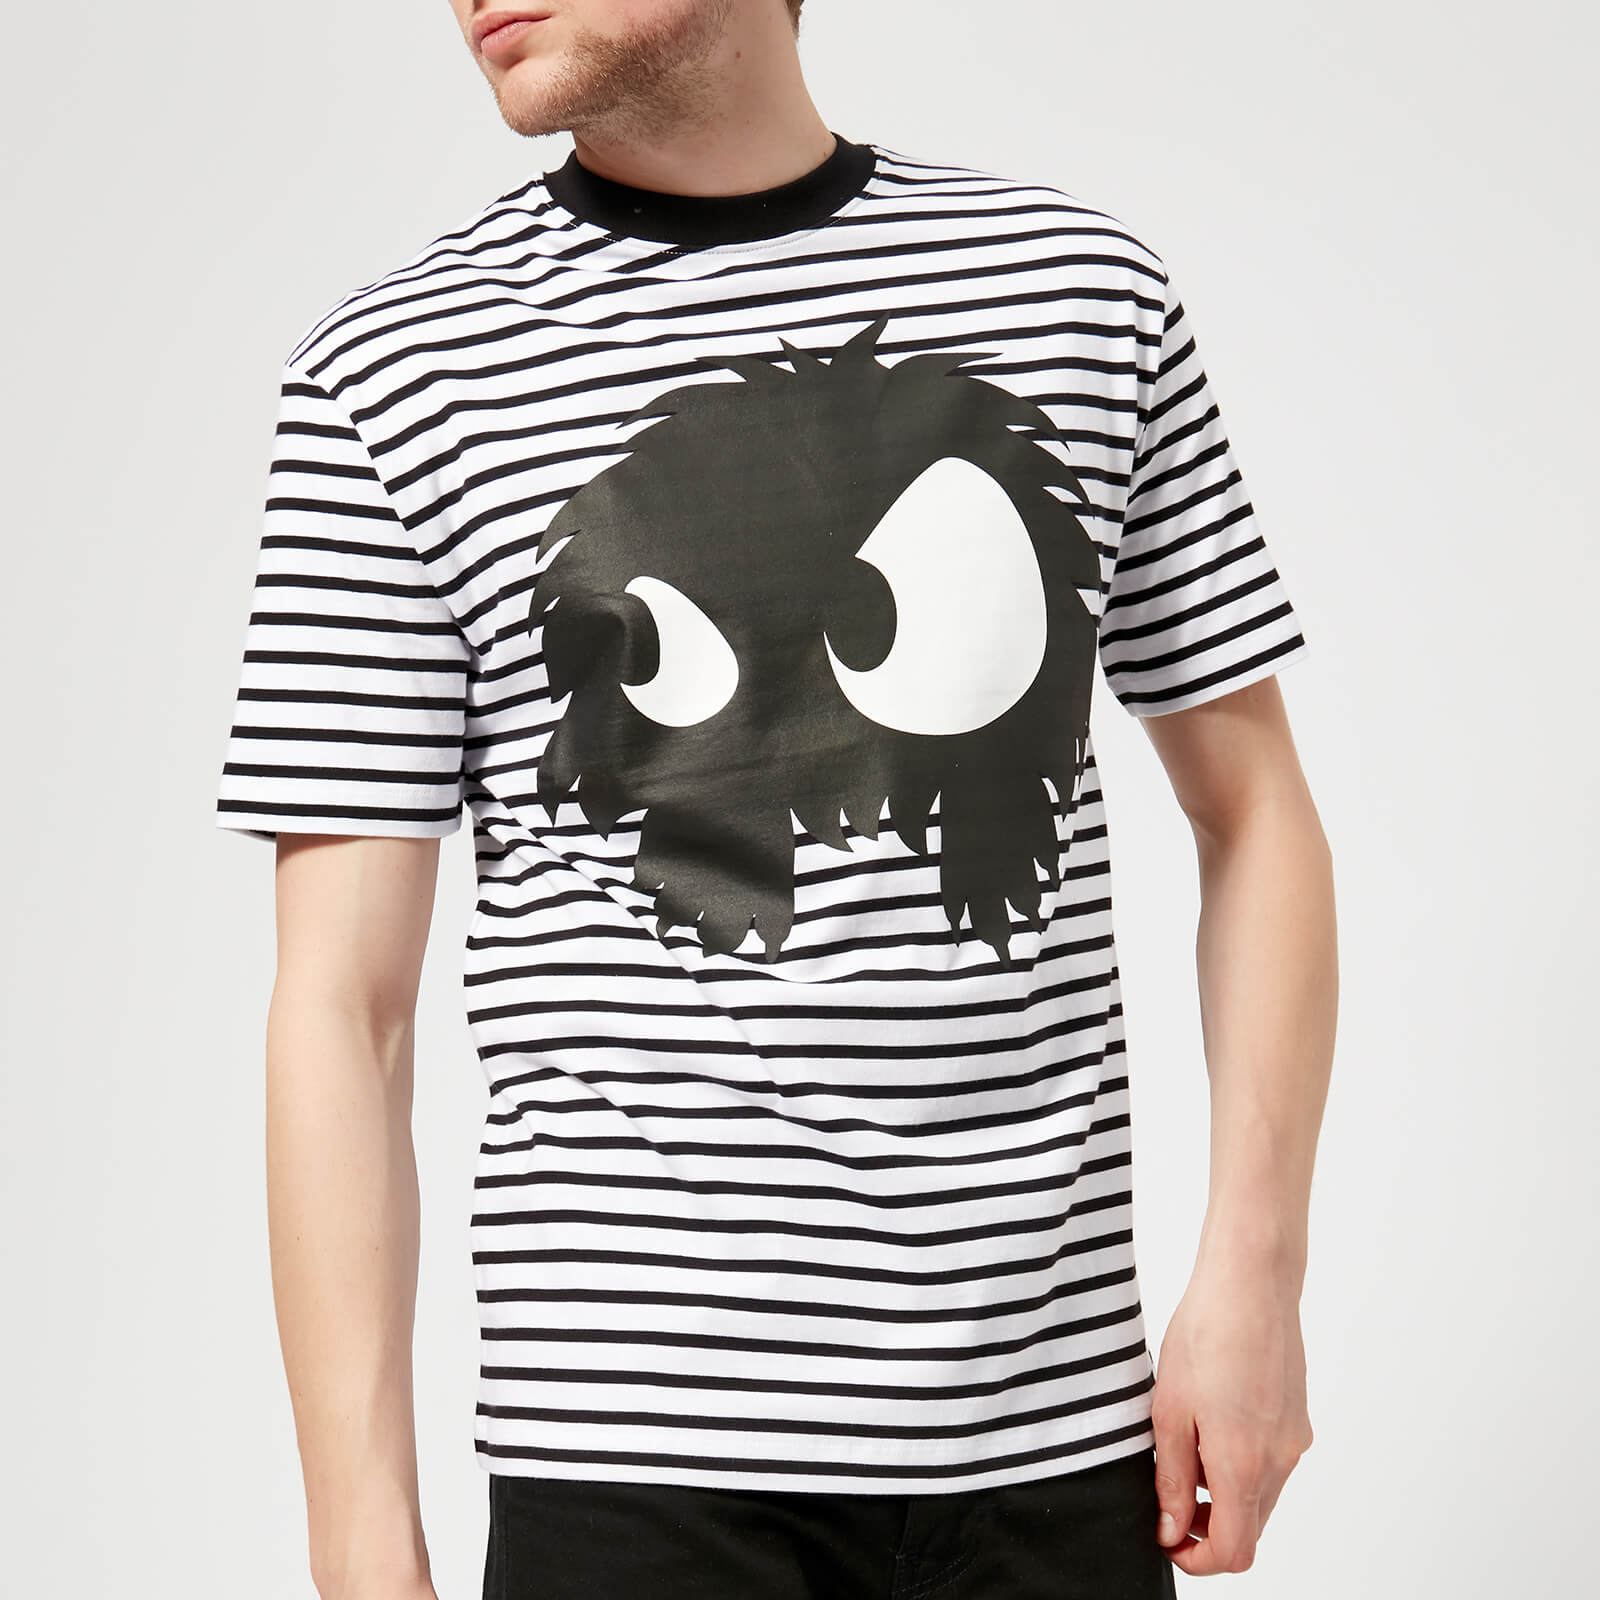 0a39117e McQ Alexander McQueen Men's Dropped Shoulder Mad Chester T-Shirt - Black/ White Stripes - Free UK Delivery over £50